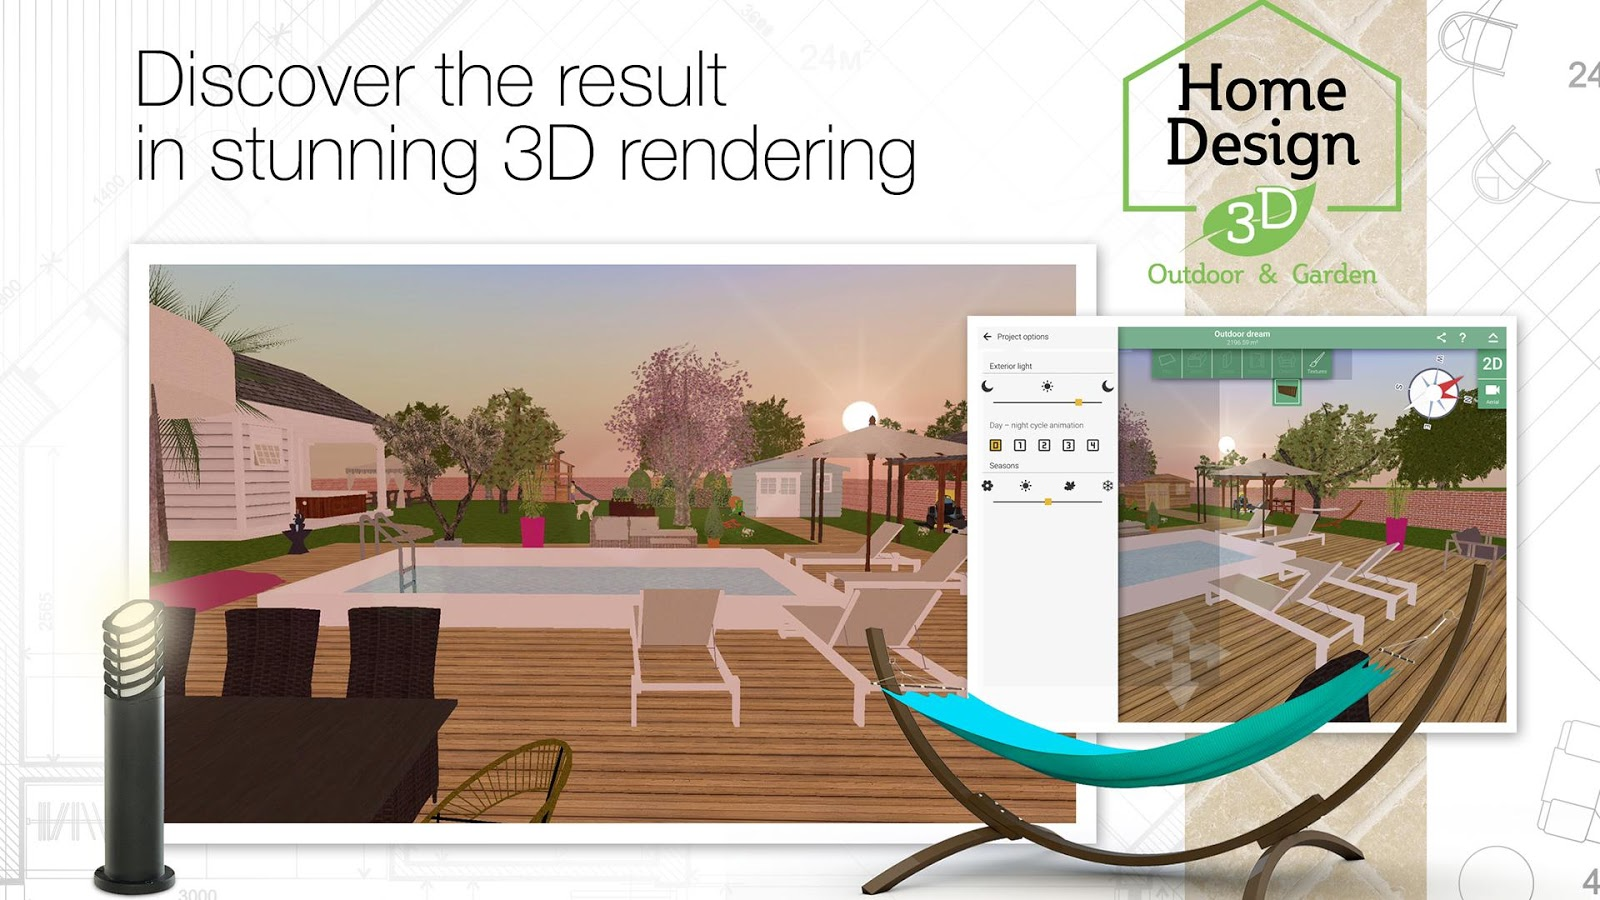 2d home design. Home Design 3D Outdoor Garden  screenshot Android Apps on Google Play